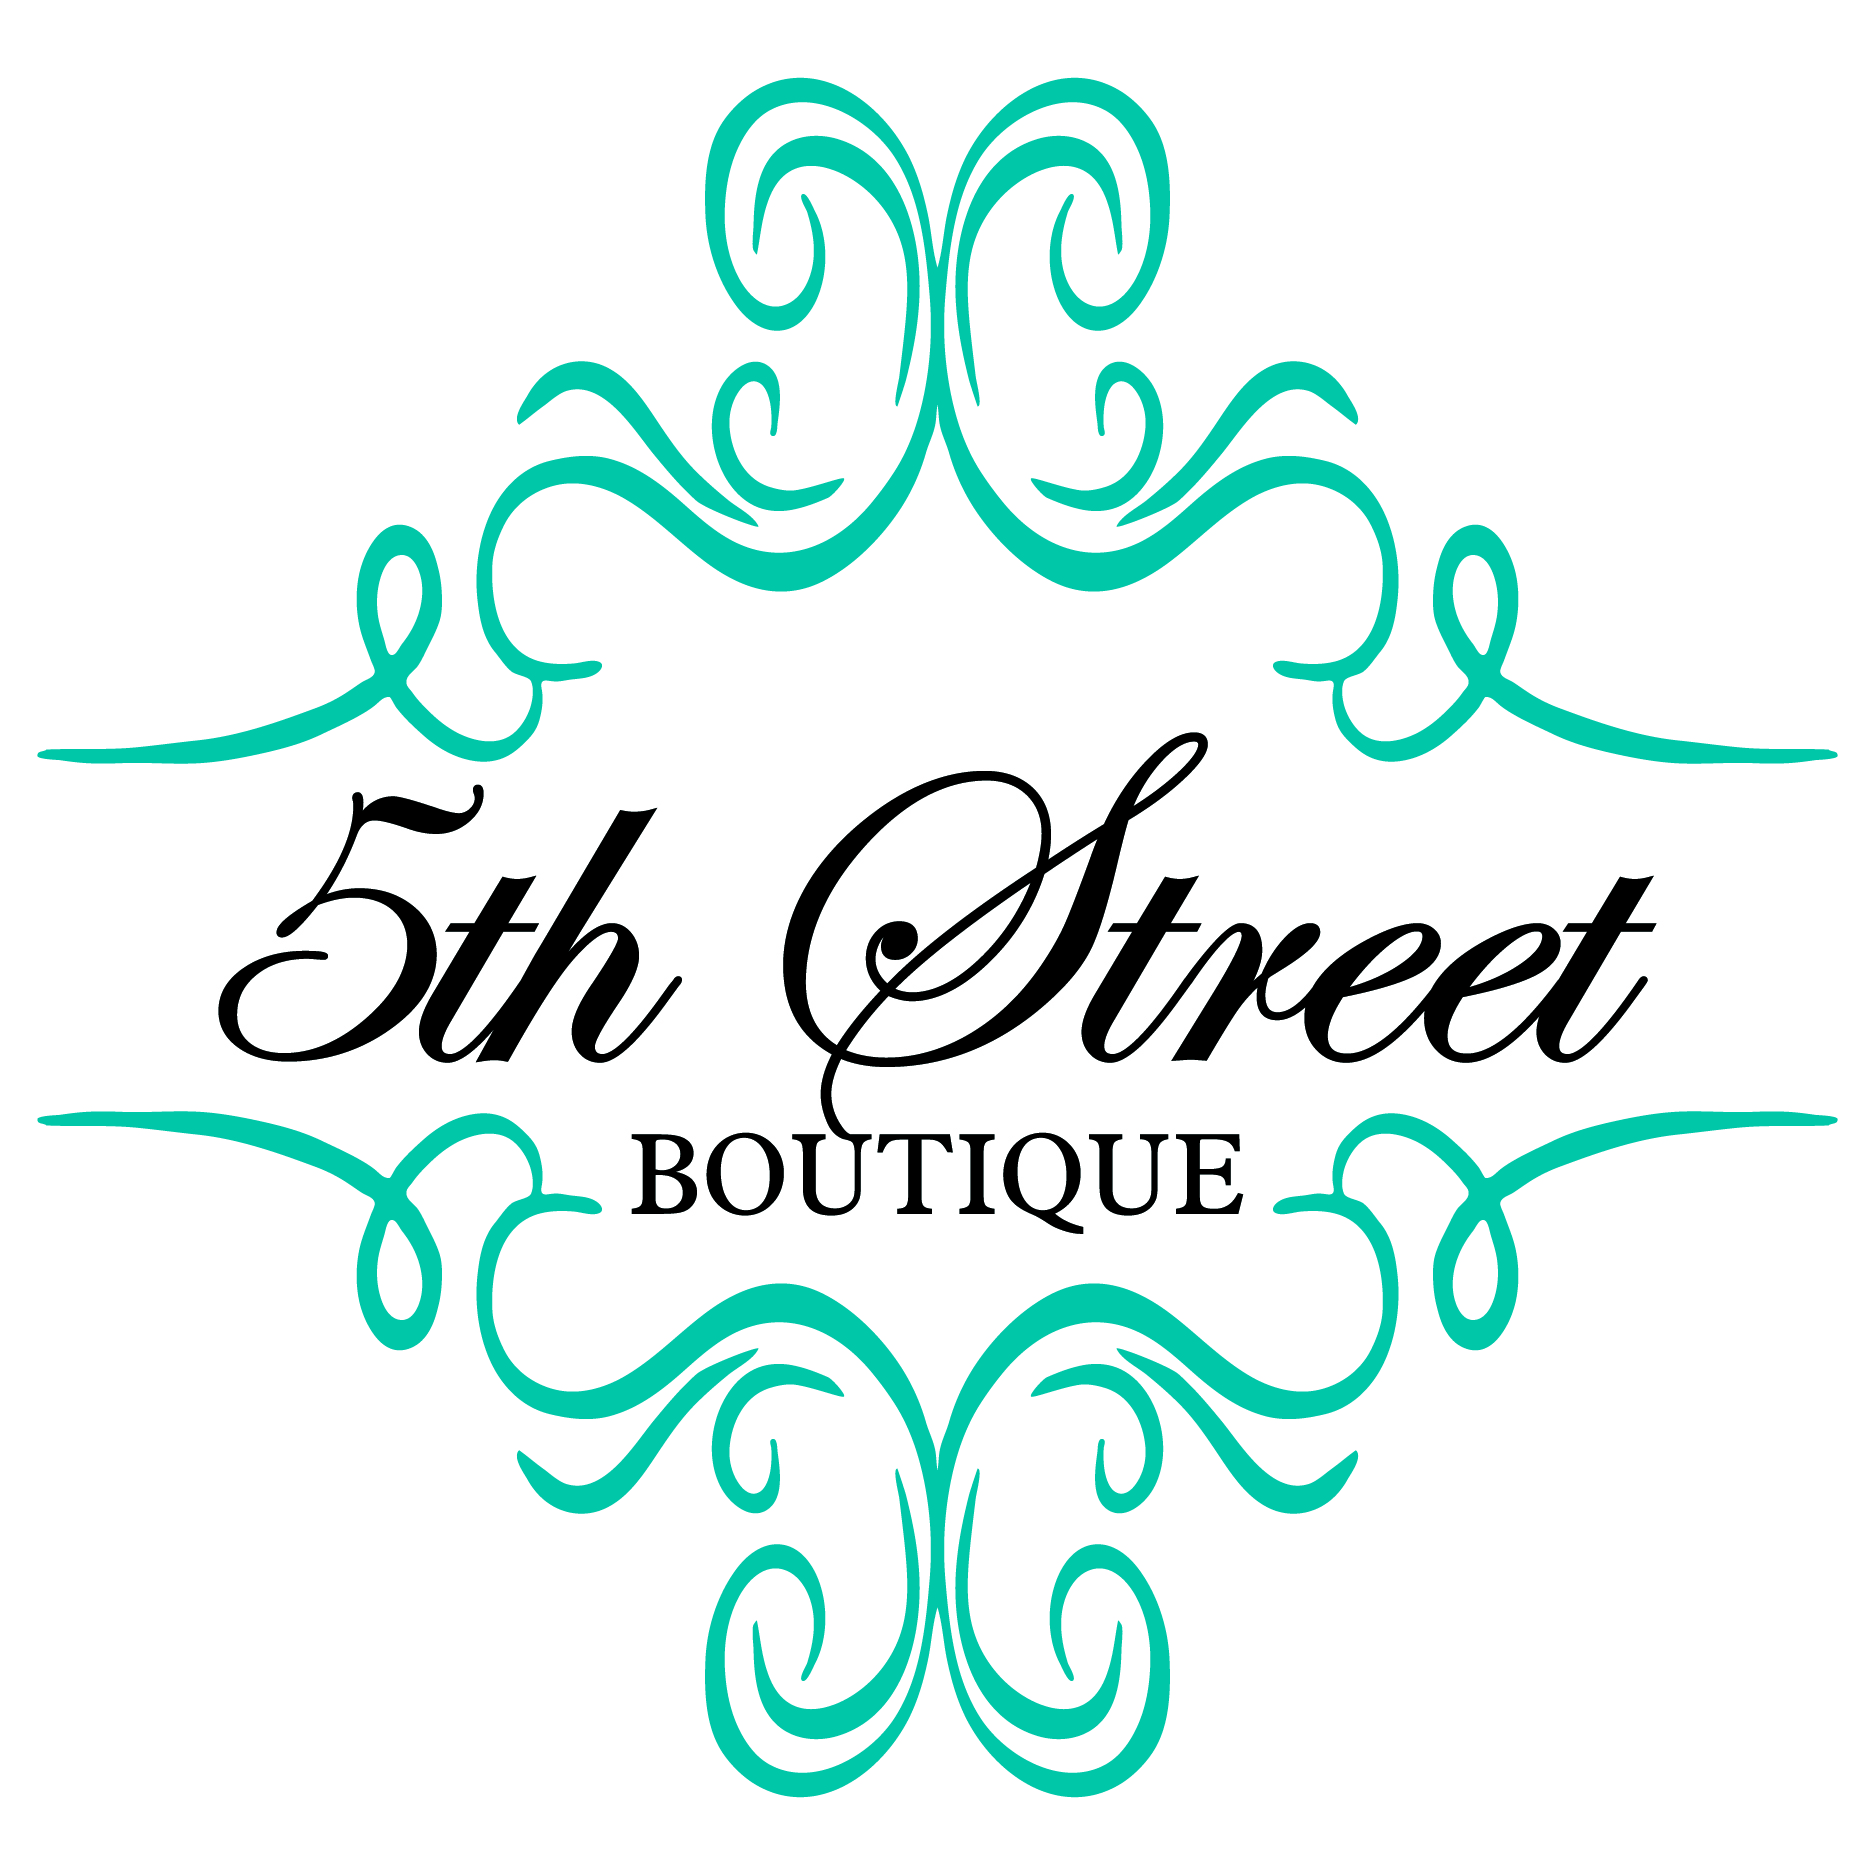 5th Street Boutique in Laredo